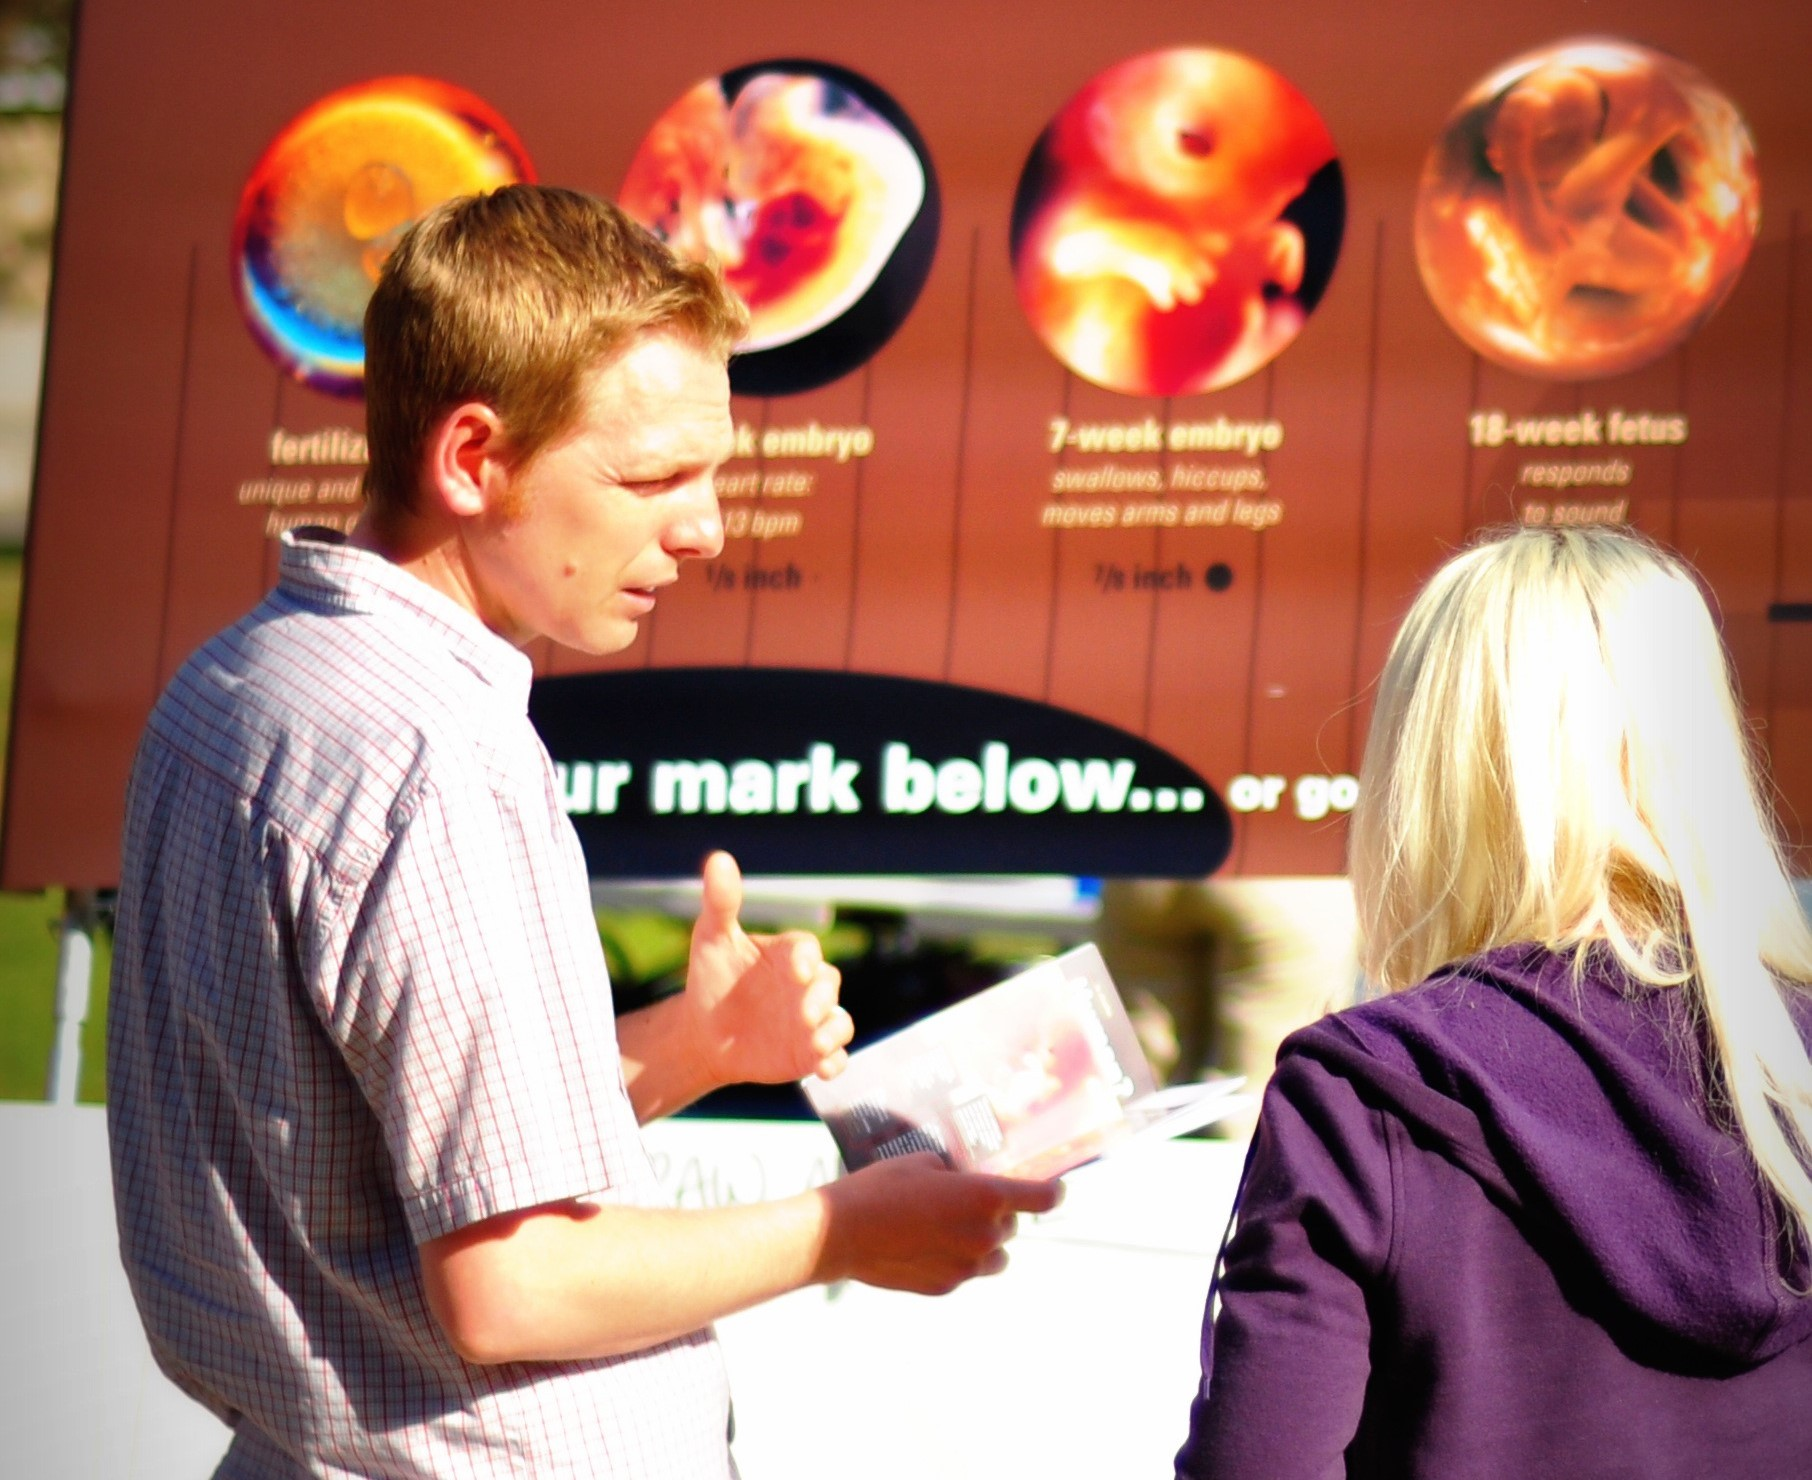 Steve Wagner  interacts with a student at a Fresno, California outreach.